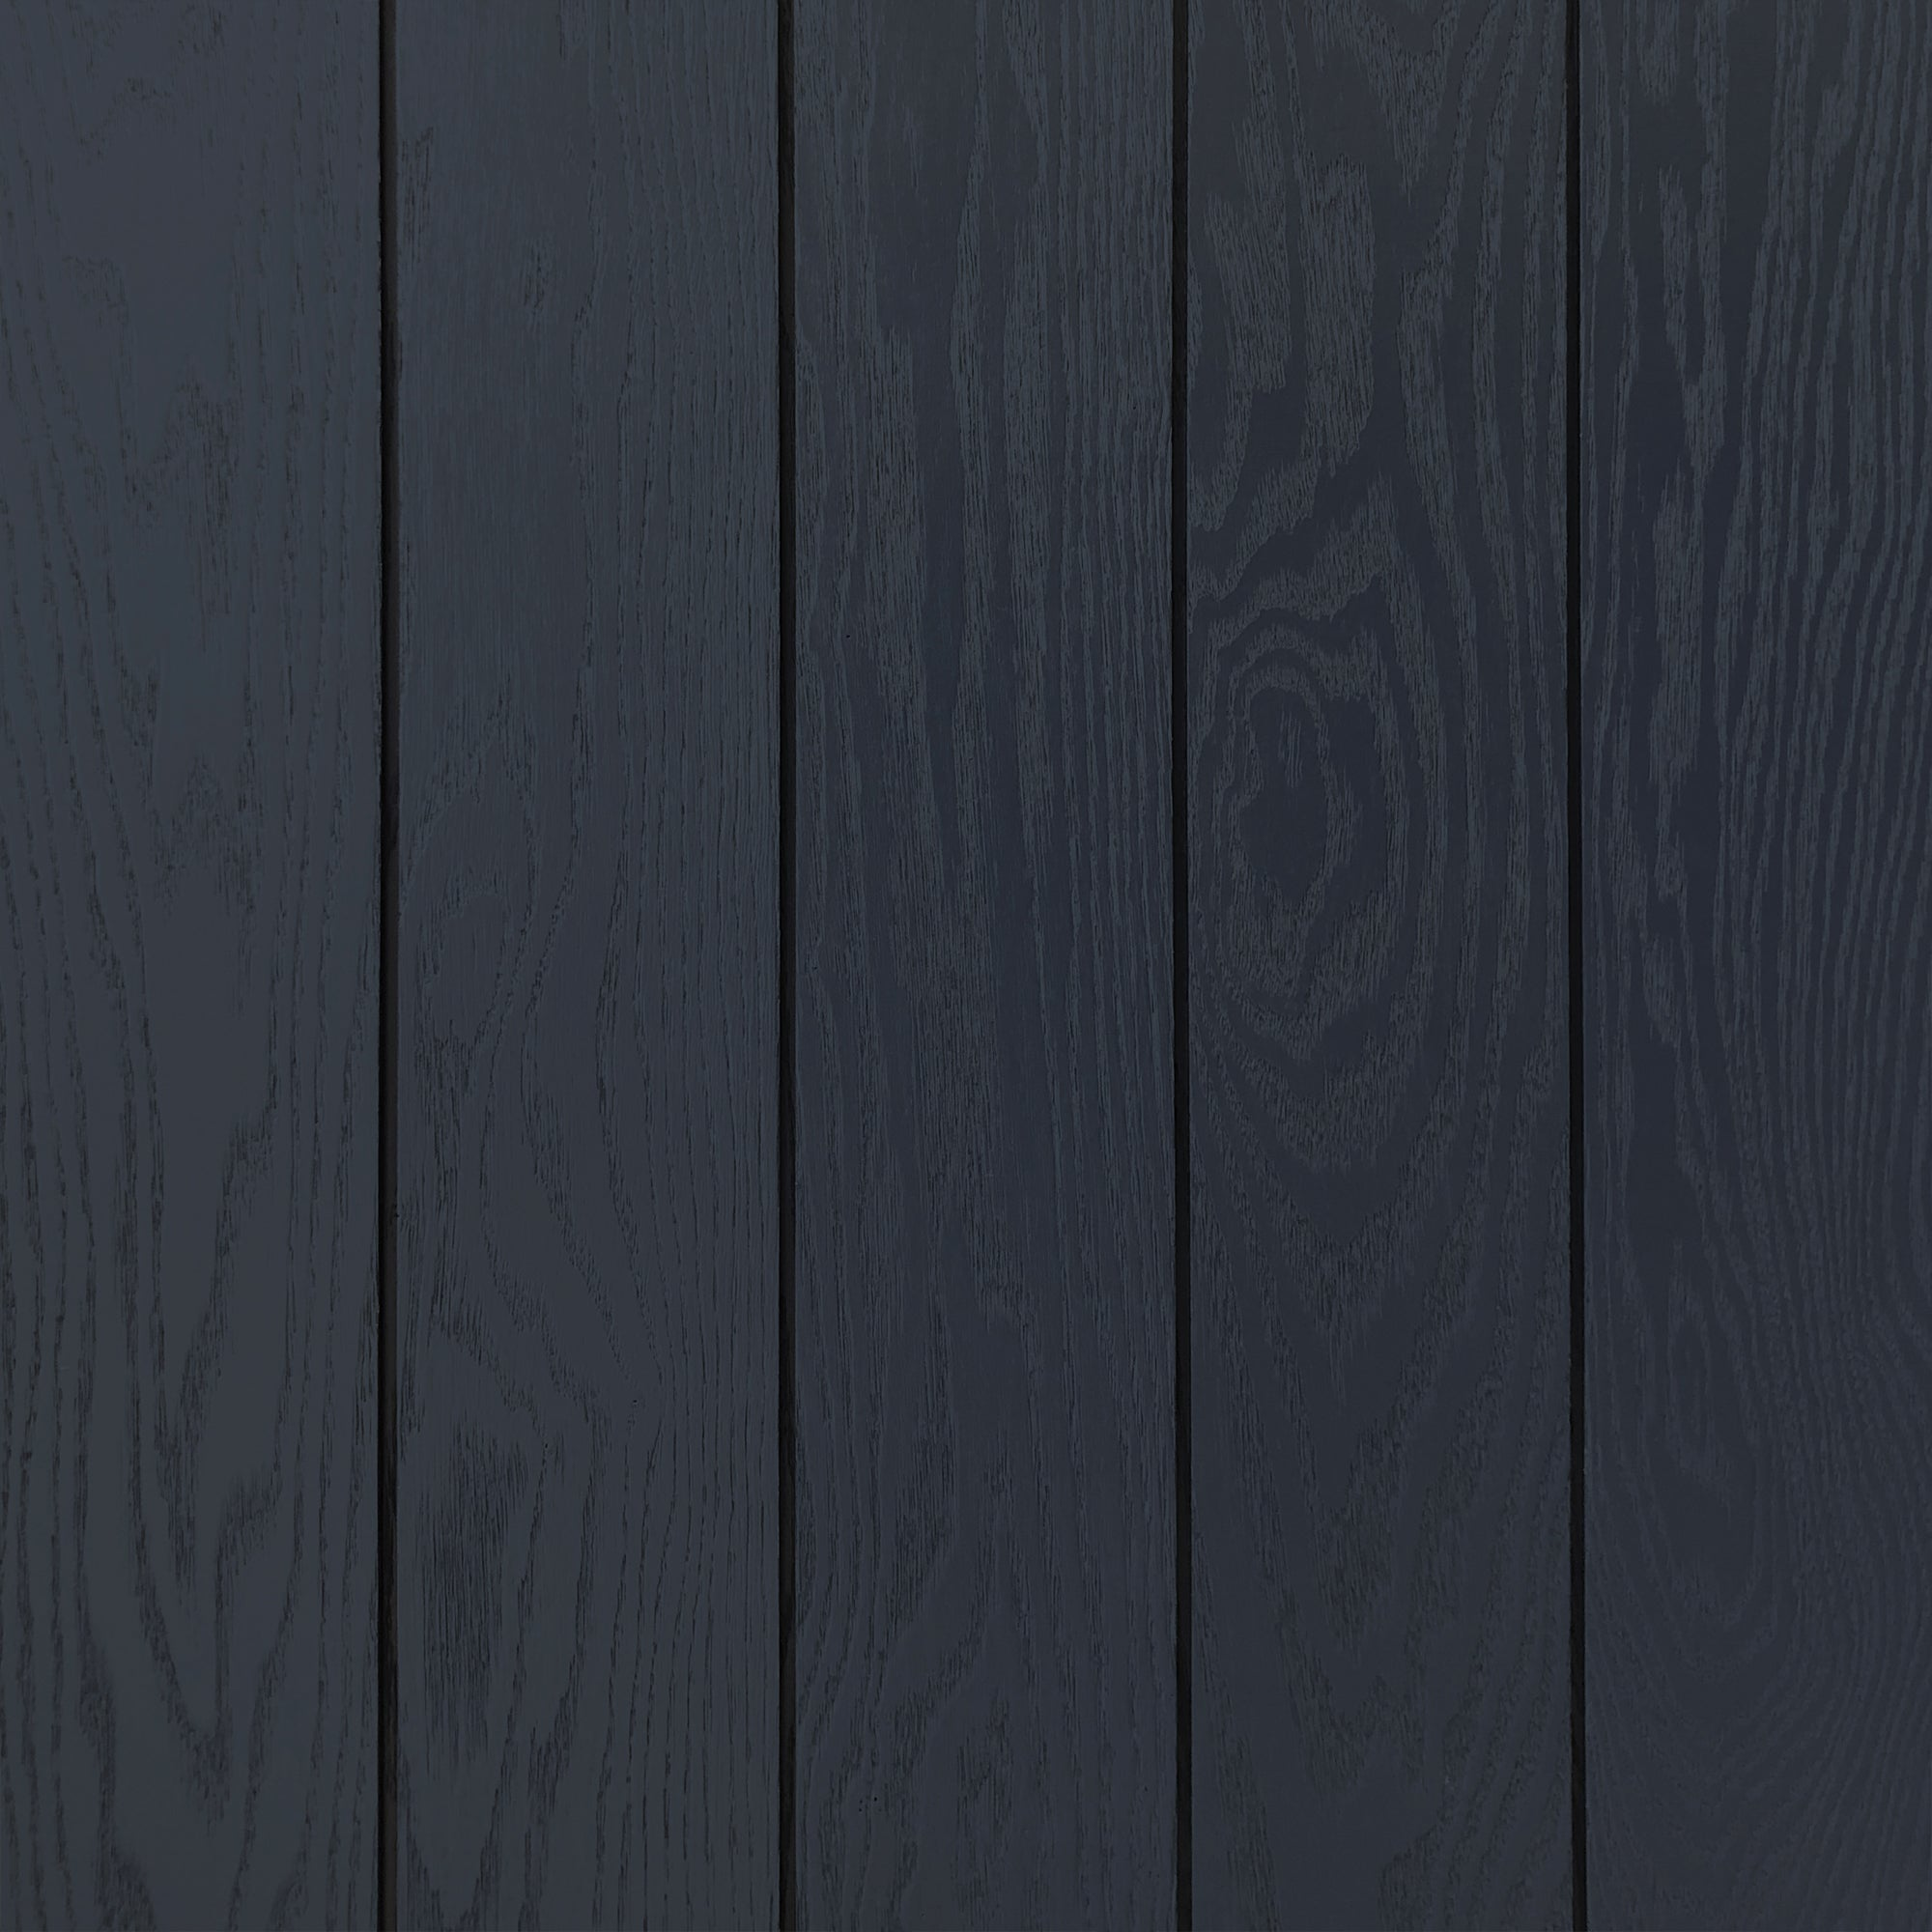 Midnight Navy Oak Shiplap Sample